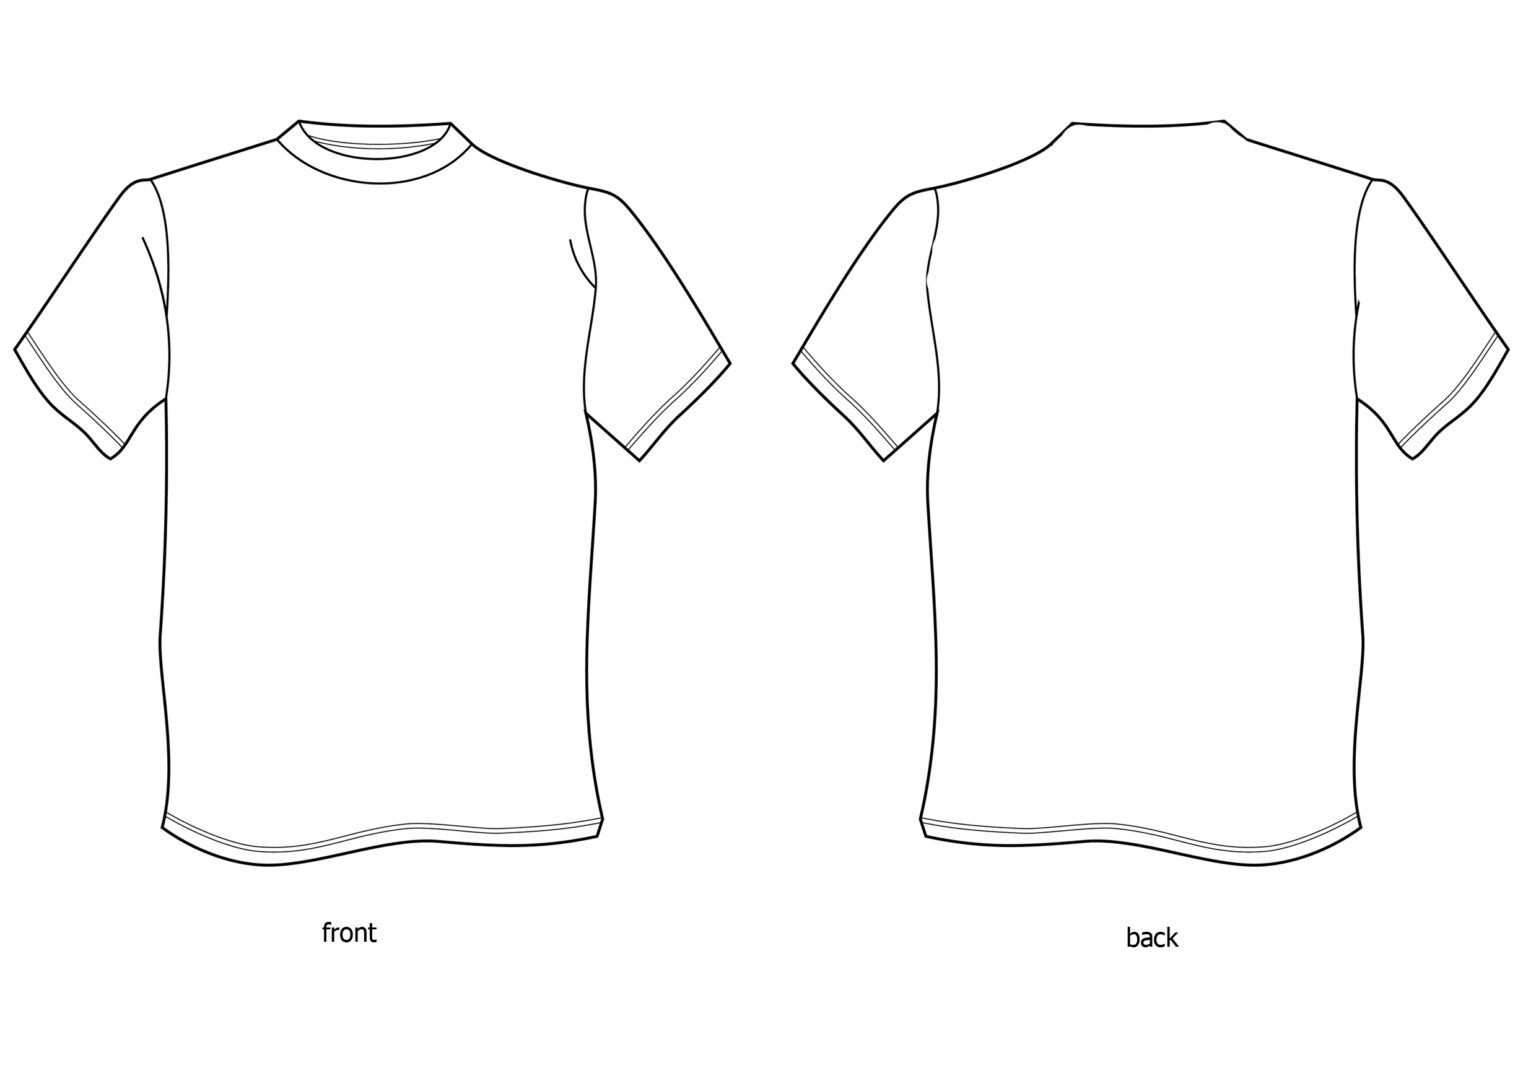 Free T Shirt Design Template Download Free Clip Art Free Pertaining To Blank T Shirt Design Templ T Shirt Design Template Free T Shirt Design Tshirt Template